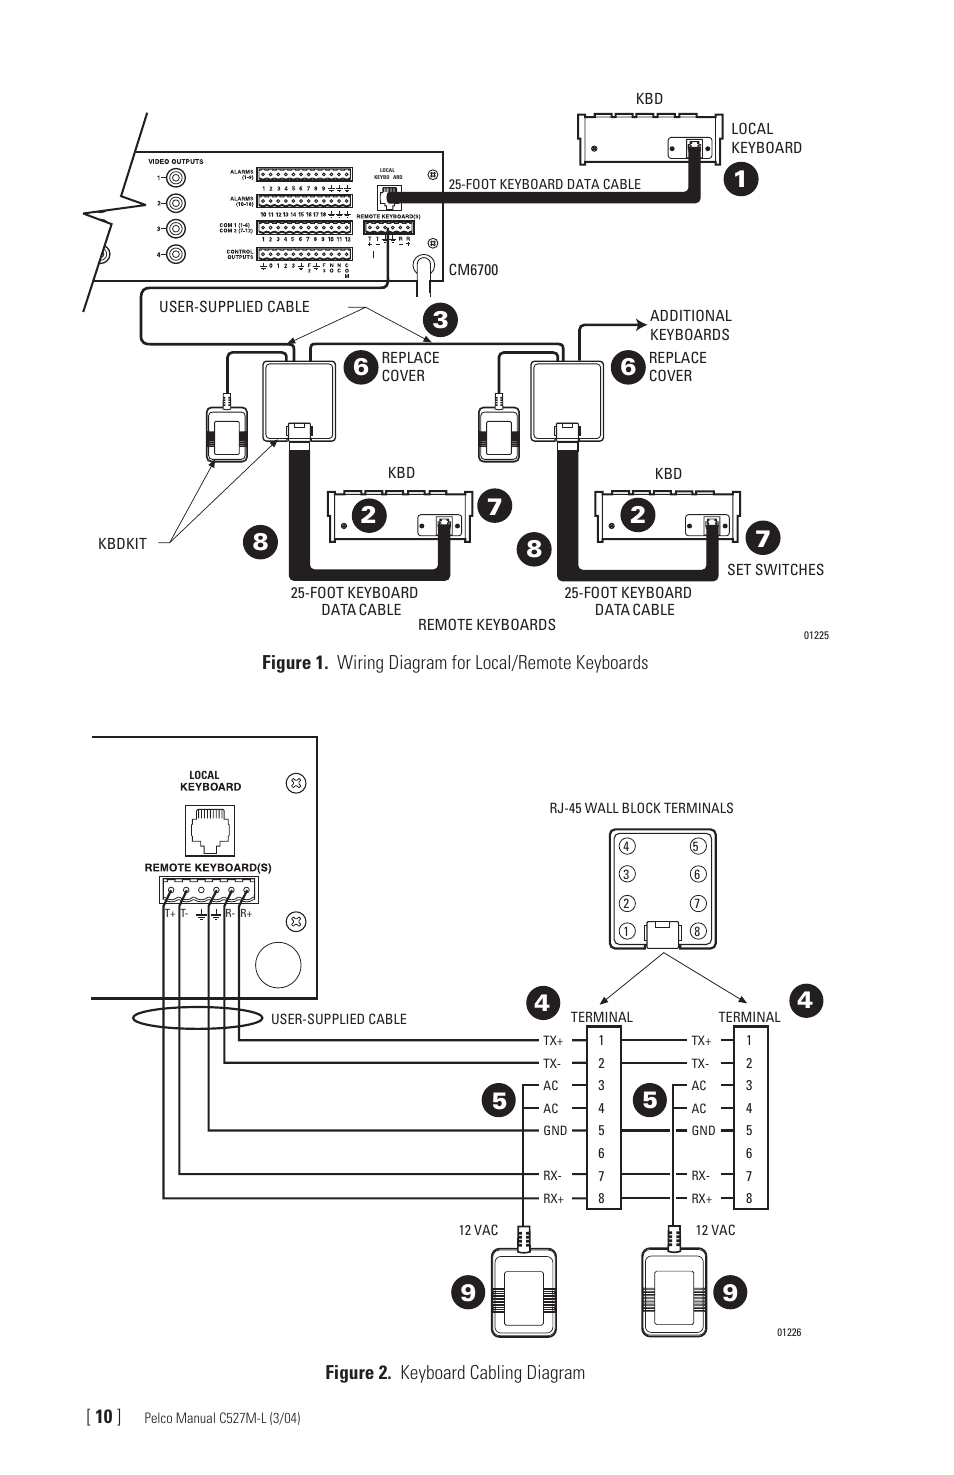 pelco-universal-keyboard-kbd300a-page10  Camera Wiring Diagram on camera screw, camera sensors diagram, surveillance camera diagram, camera parts diagram, camera cable, camera lighting diagram, camera software diagram, camera components diagram, camera design diagram, camera framing diagram, model rocket diagram, camera body diagram, camera installation diagram, camera control diagram, camera network diagram, camera antenna diagram, security camera 4 pin diagram, backup camera diagram,